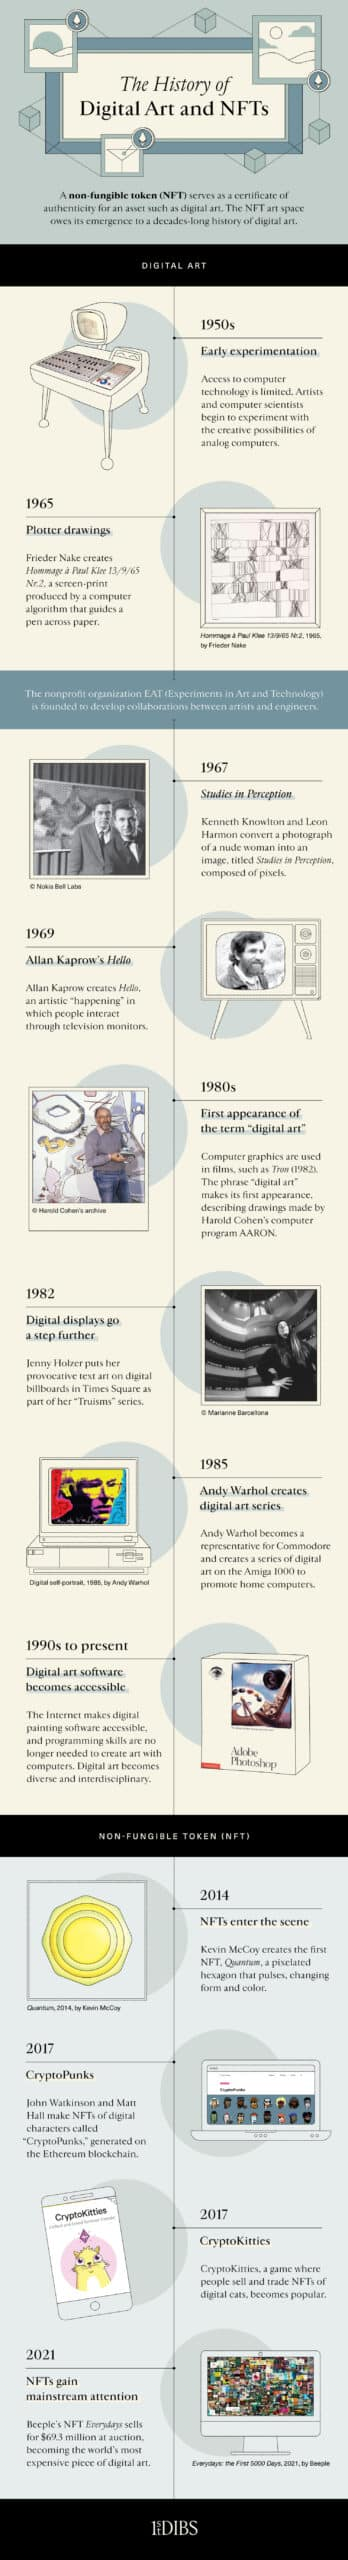 history of digital art and NFT infographic